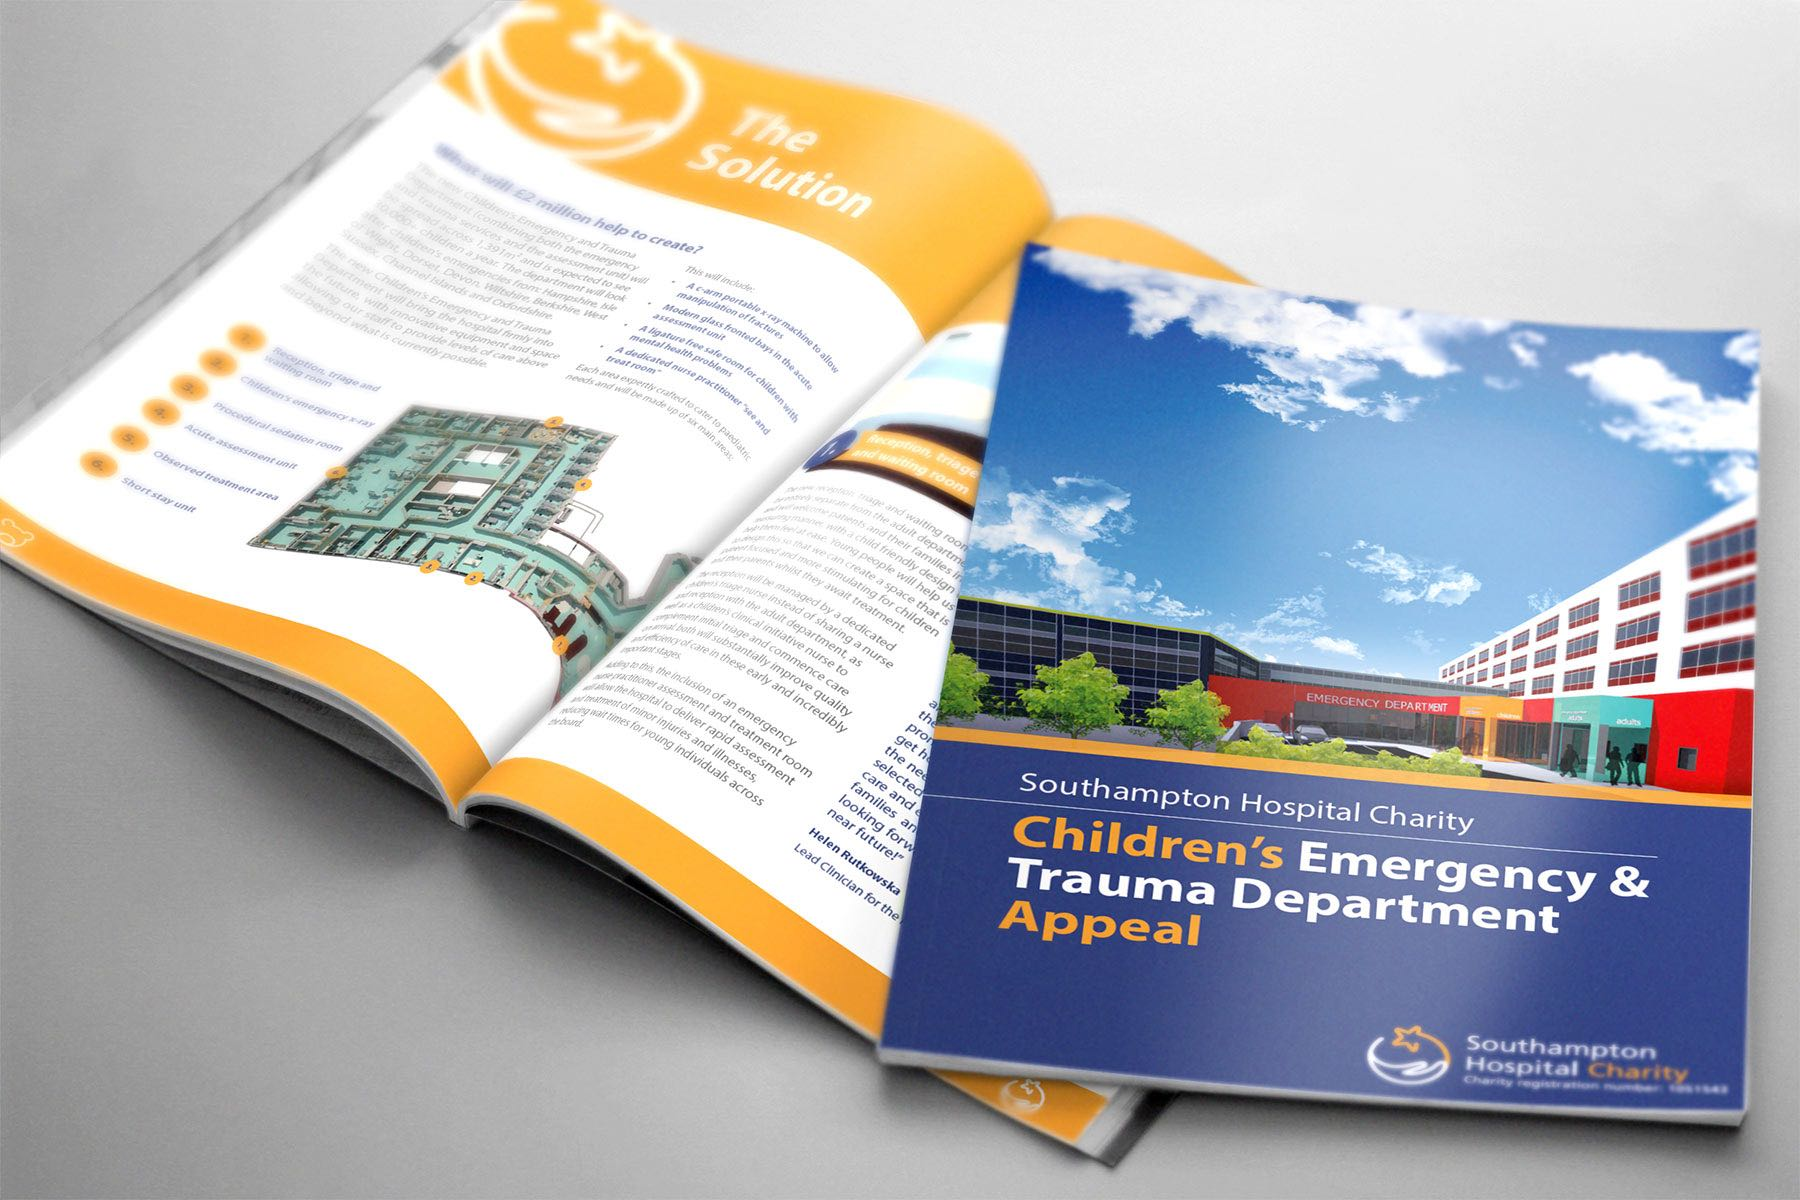 Laying the Foundations – An update on the build of the Children's Emergency and Trauma Department